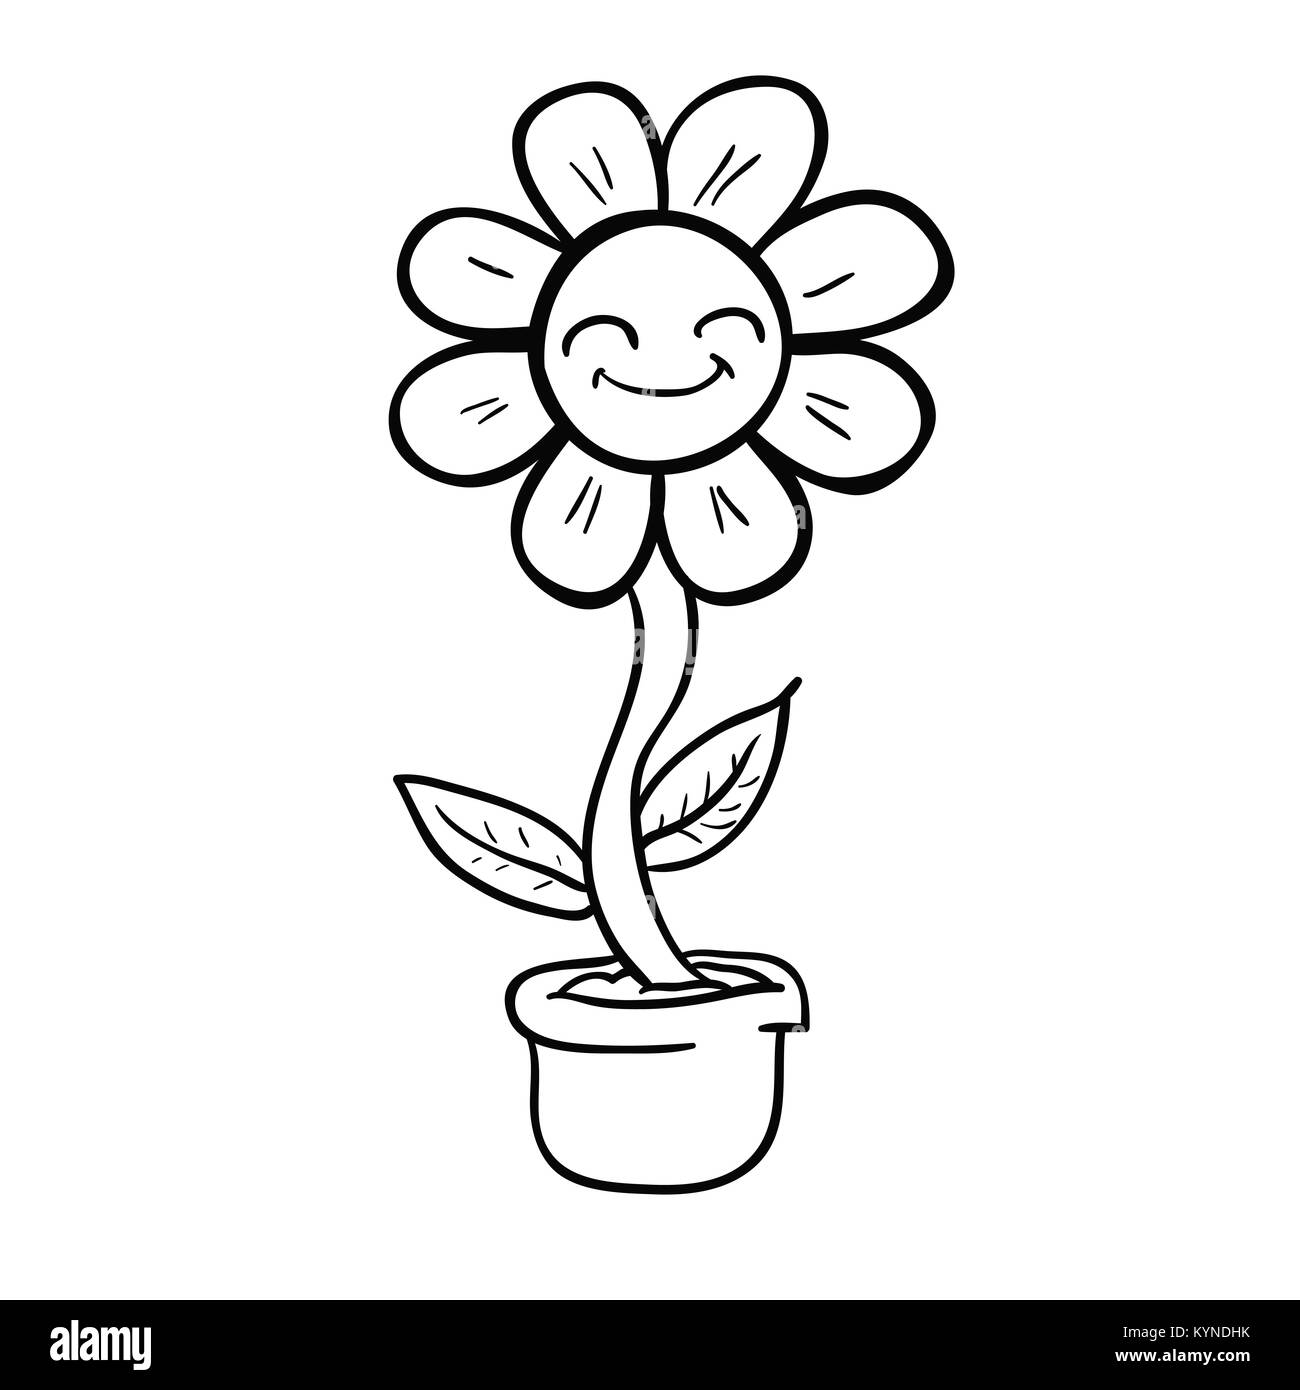 Cartoon Happy Flower In A Pot Black And White Illustration